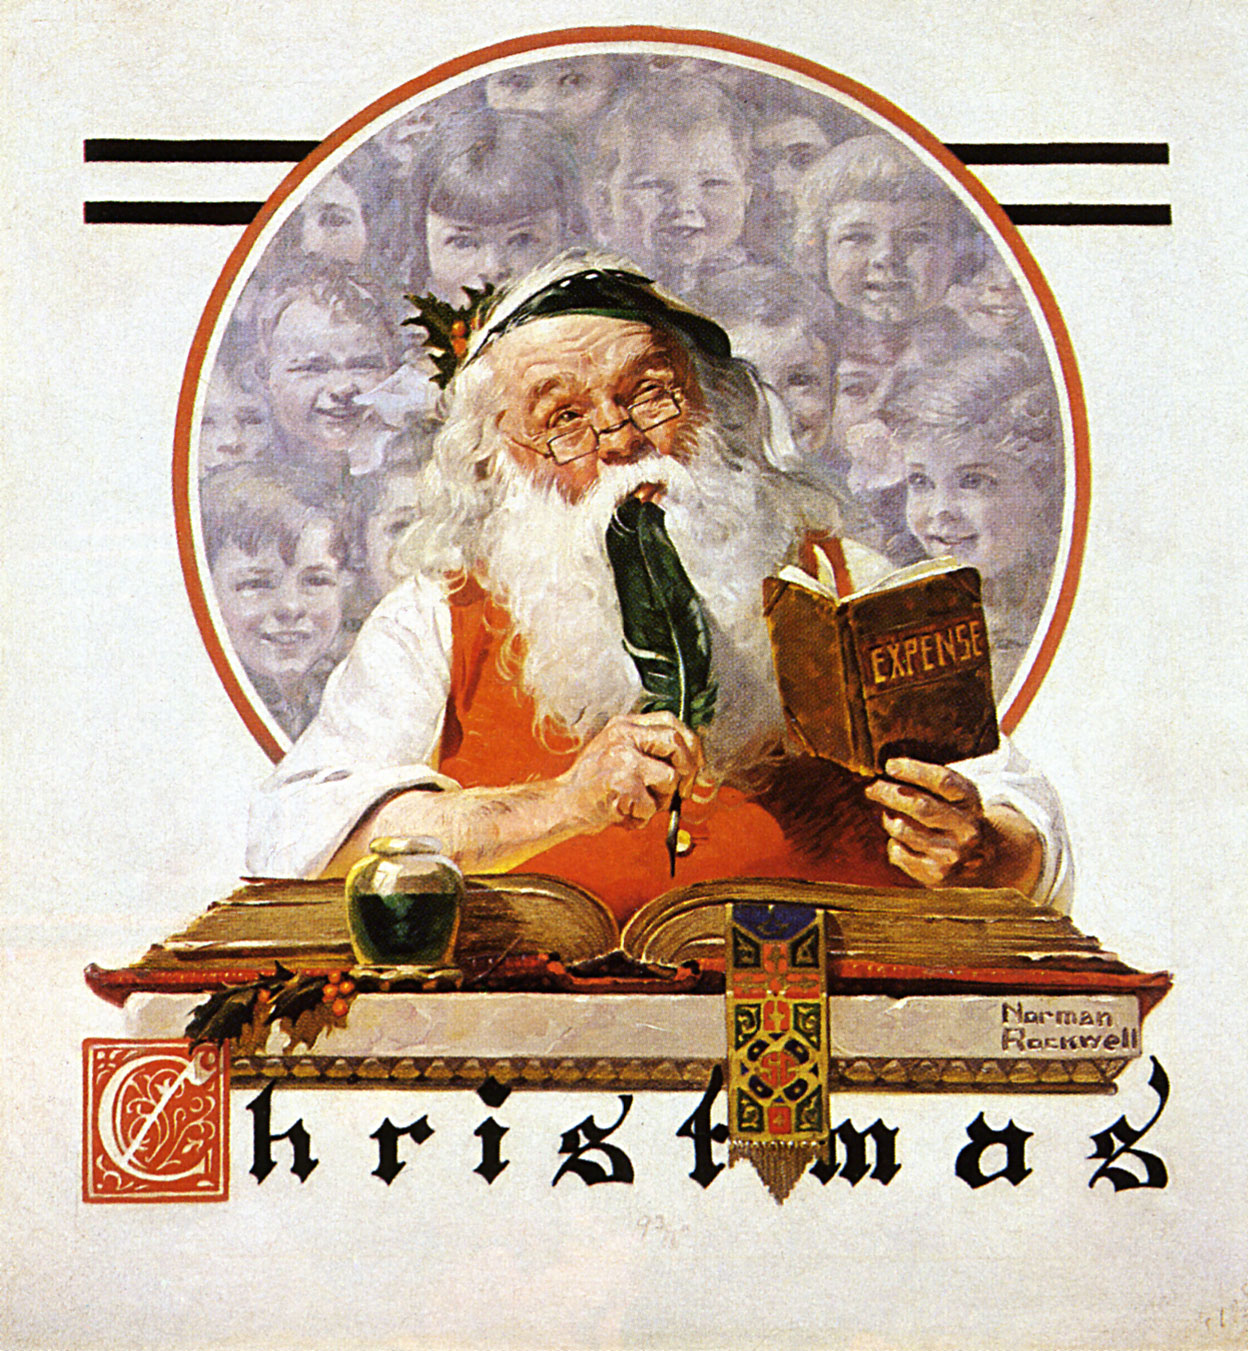 File:Norman Rockwell Santa and expense book.jpg - Wikimedia Commons